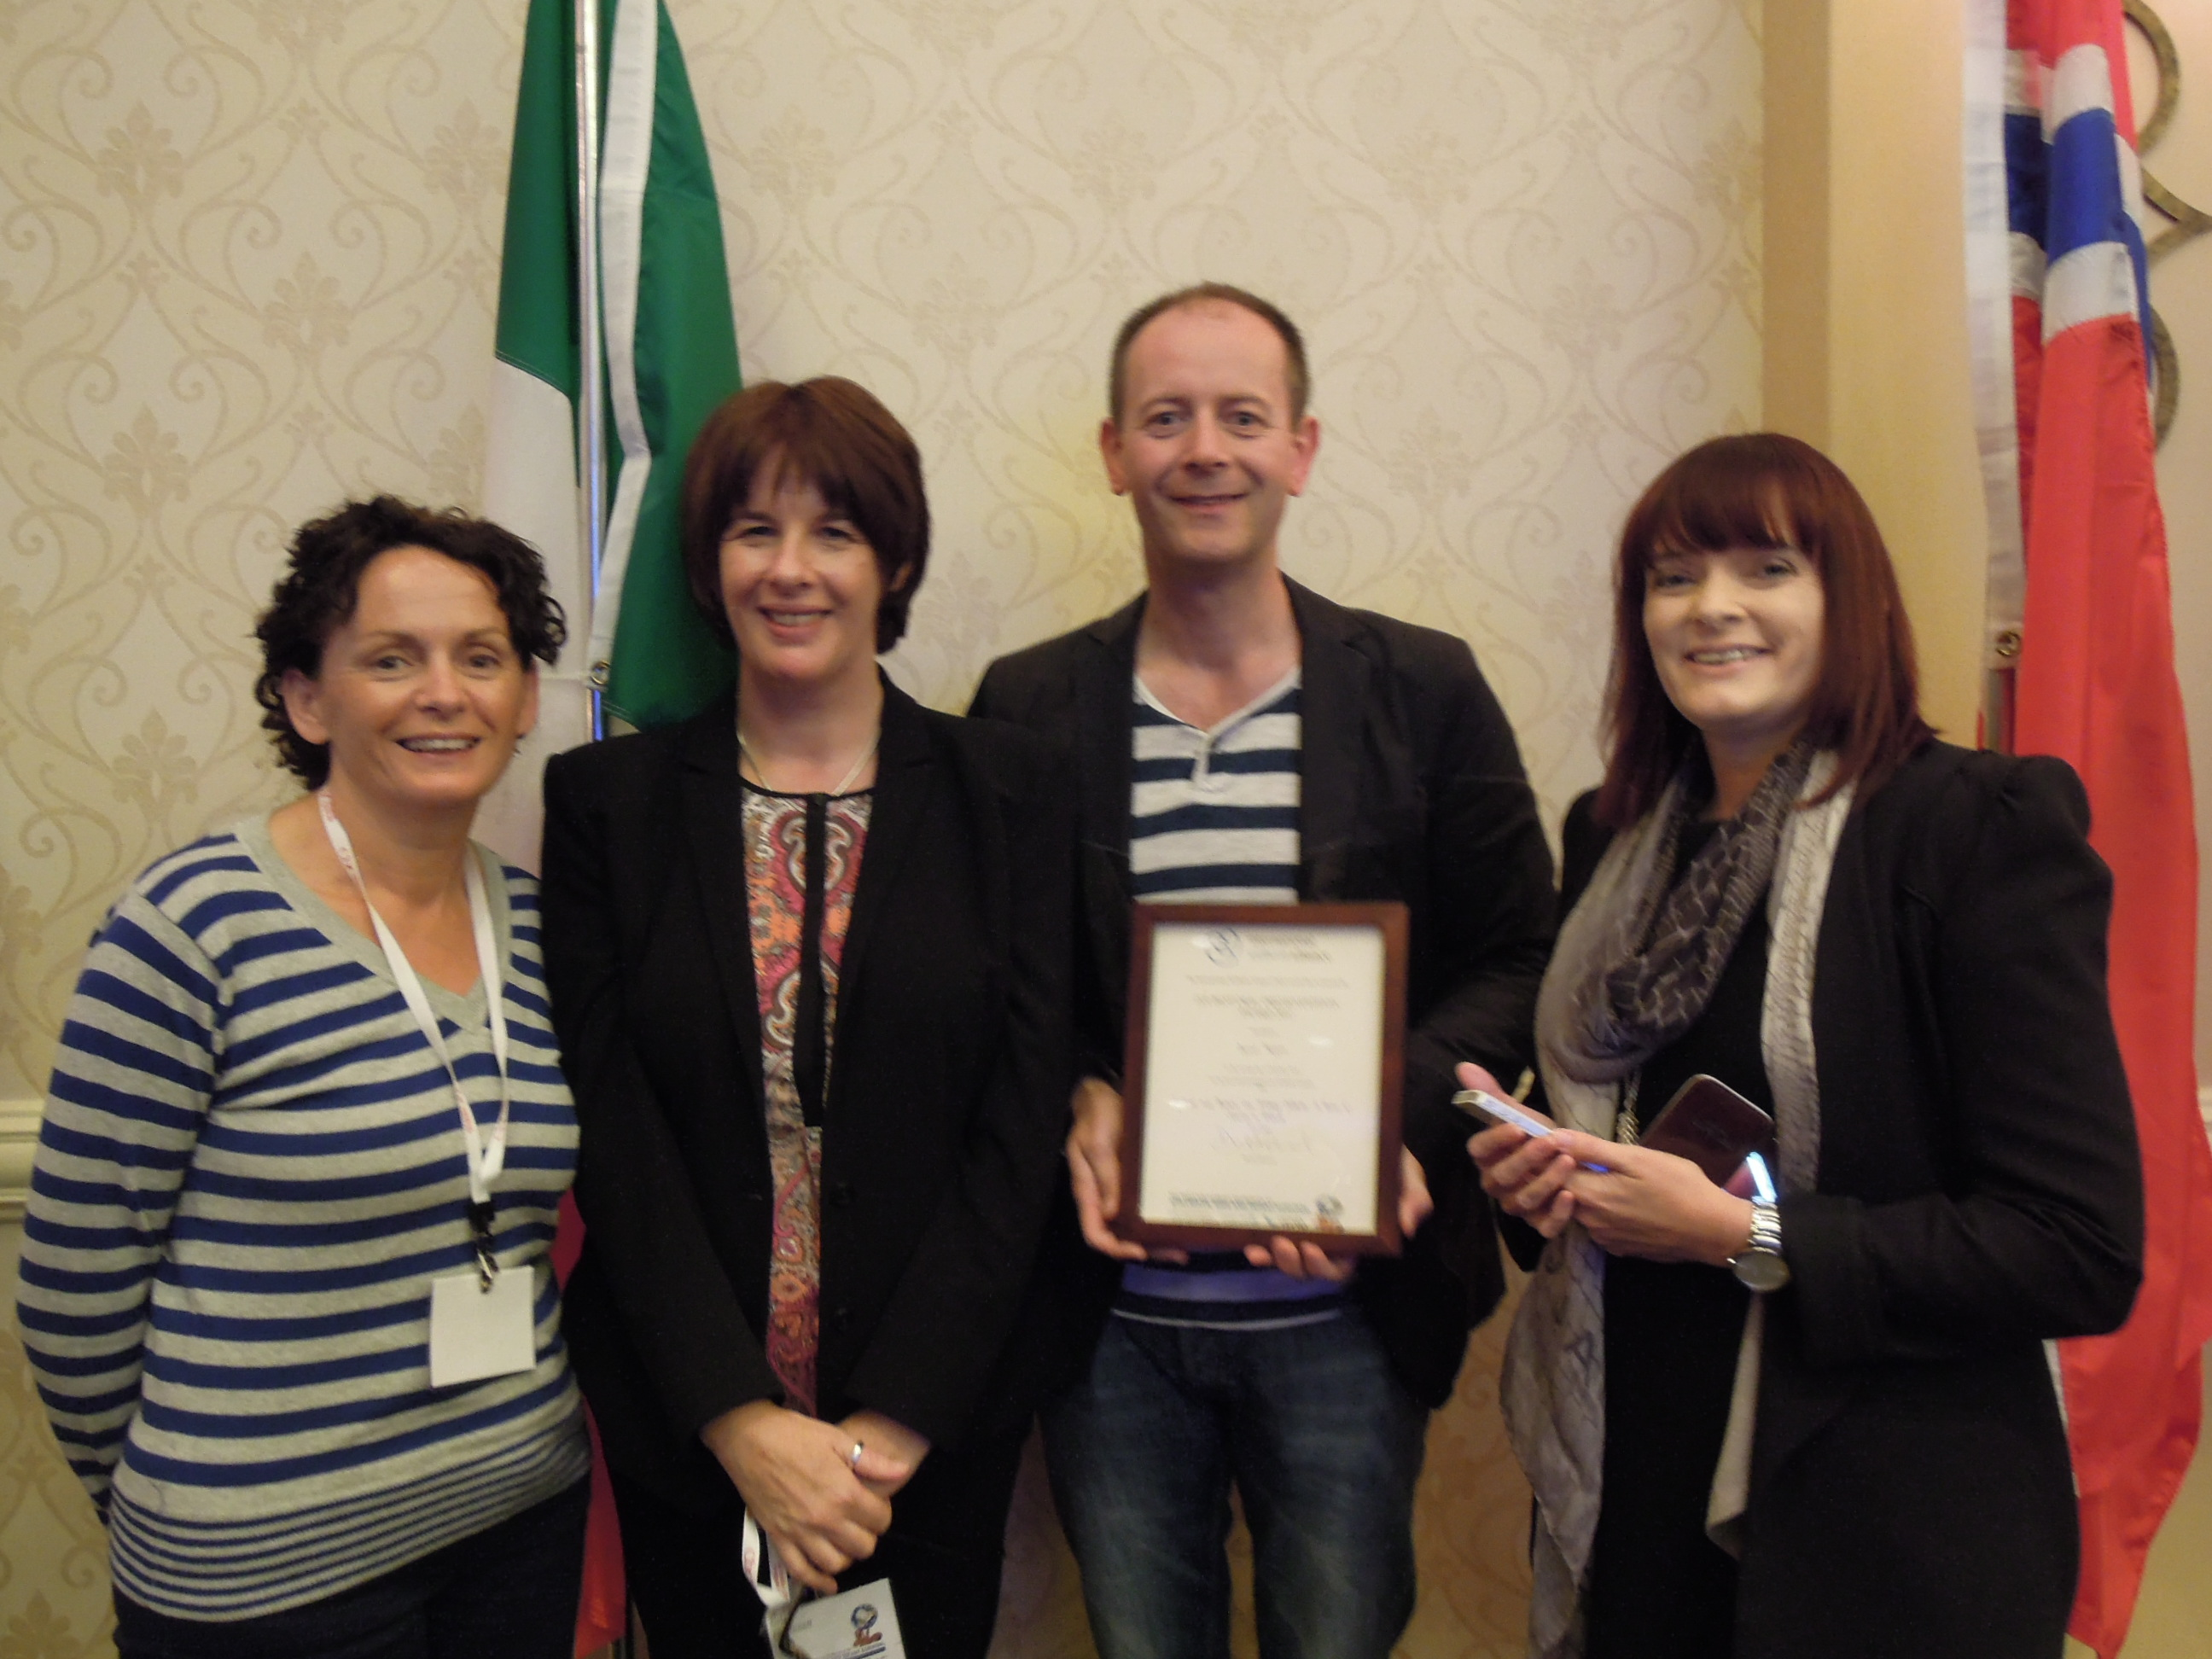 Cork Hospital Chaplain Receives Award At International Conference